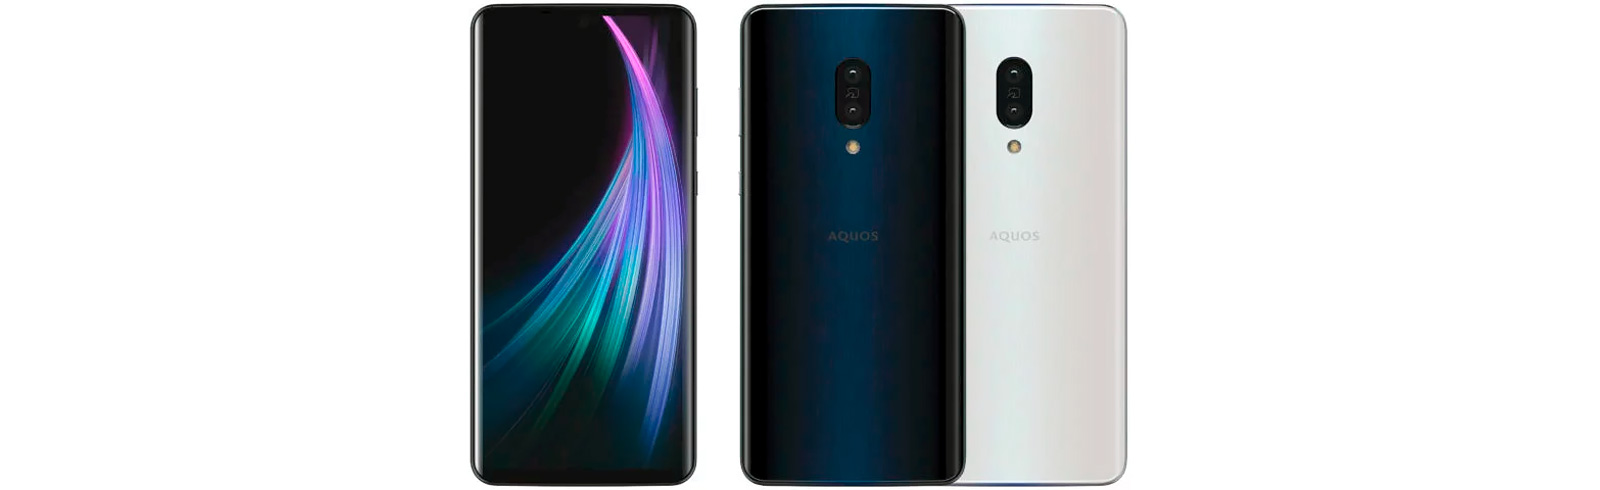 Sharp Aquos Zero2 with a 240 Hz display and Snapdragon 855 chipset is announced